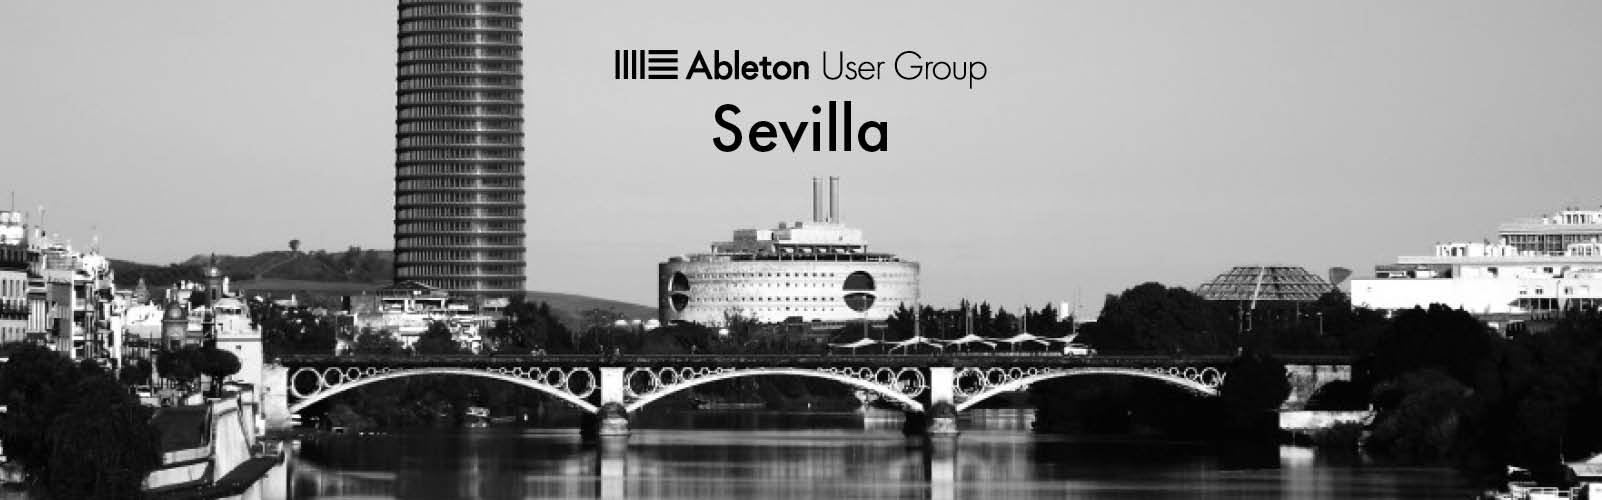 Sevilla Ableton User Group Logo Black.jpg